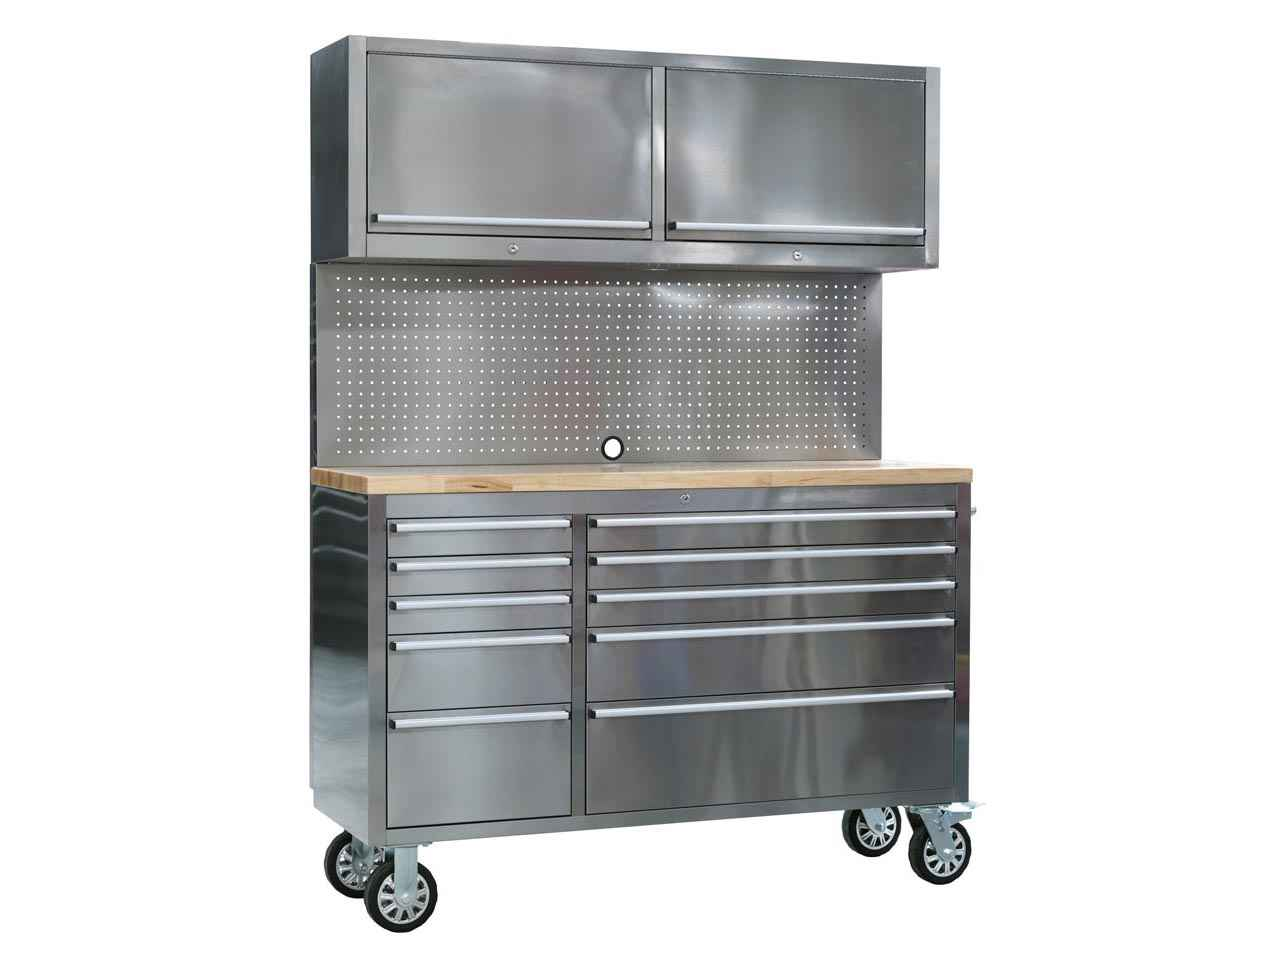 Details about Sealey AP5520SS Mobile Stainless Steel Tool Cabinet 10 Drawer  with Backboard   2 93f544e966aa